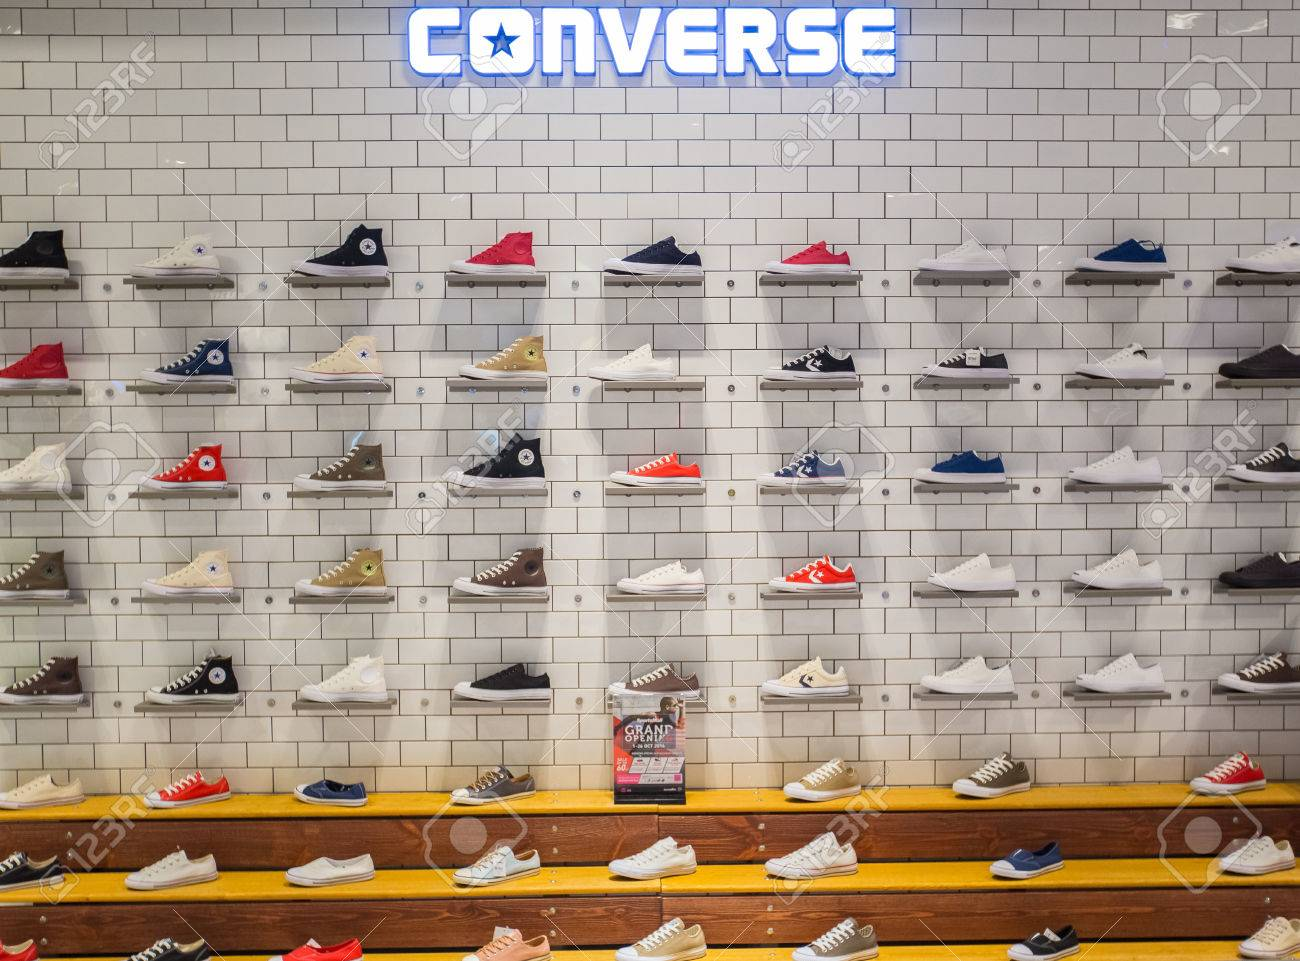 Converse All Star, Converse sneakers in Converse Shop, Siam Discovery